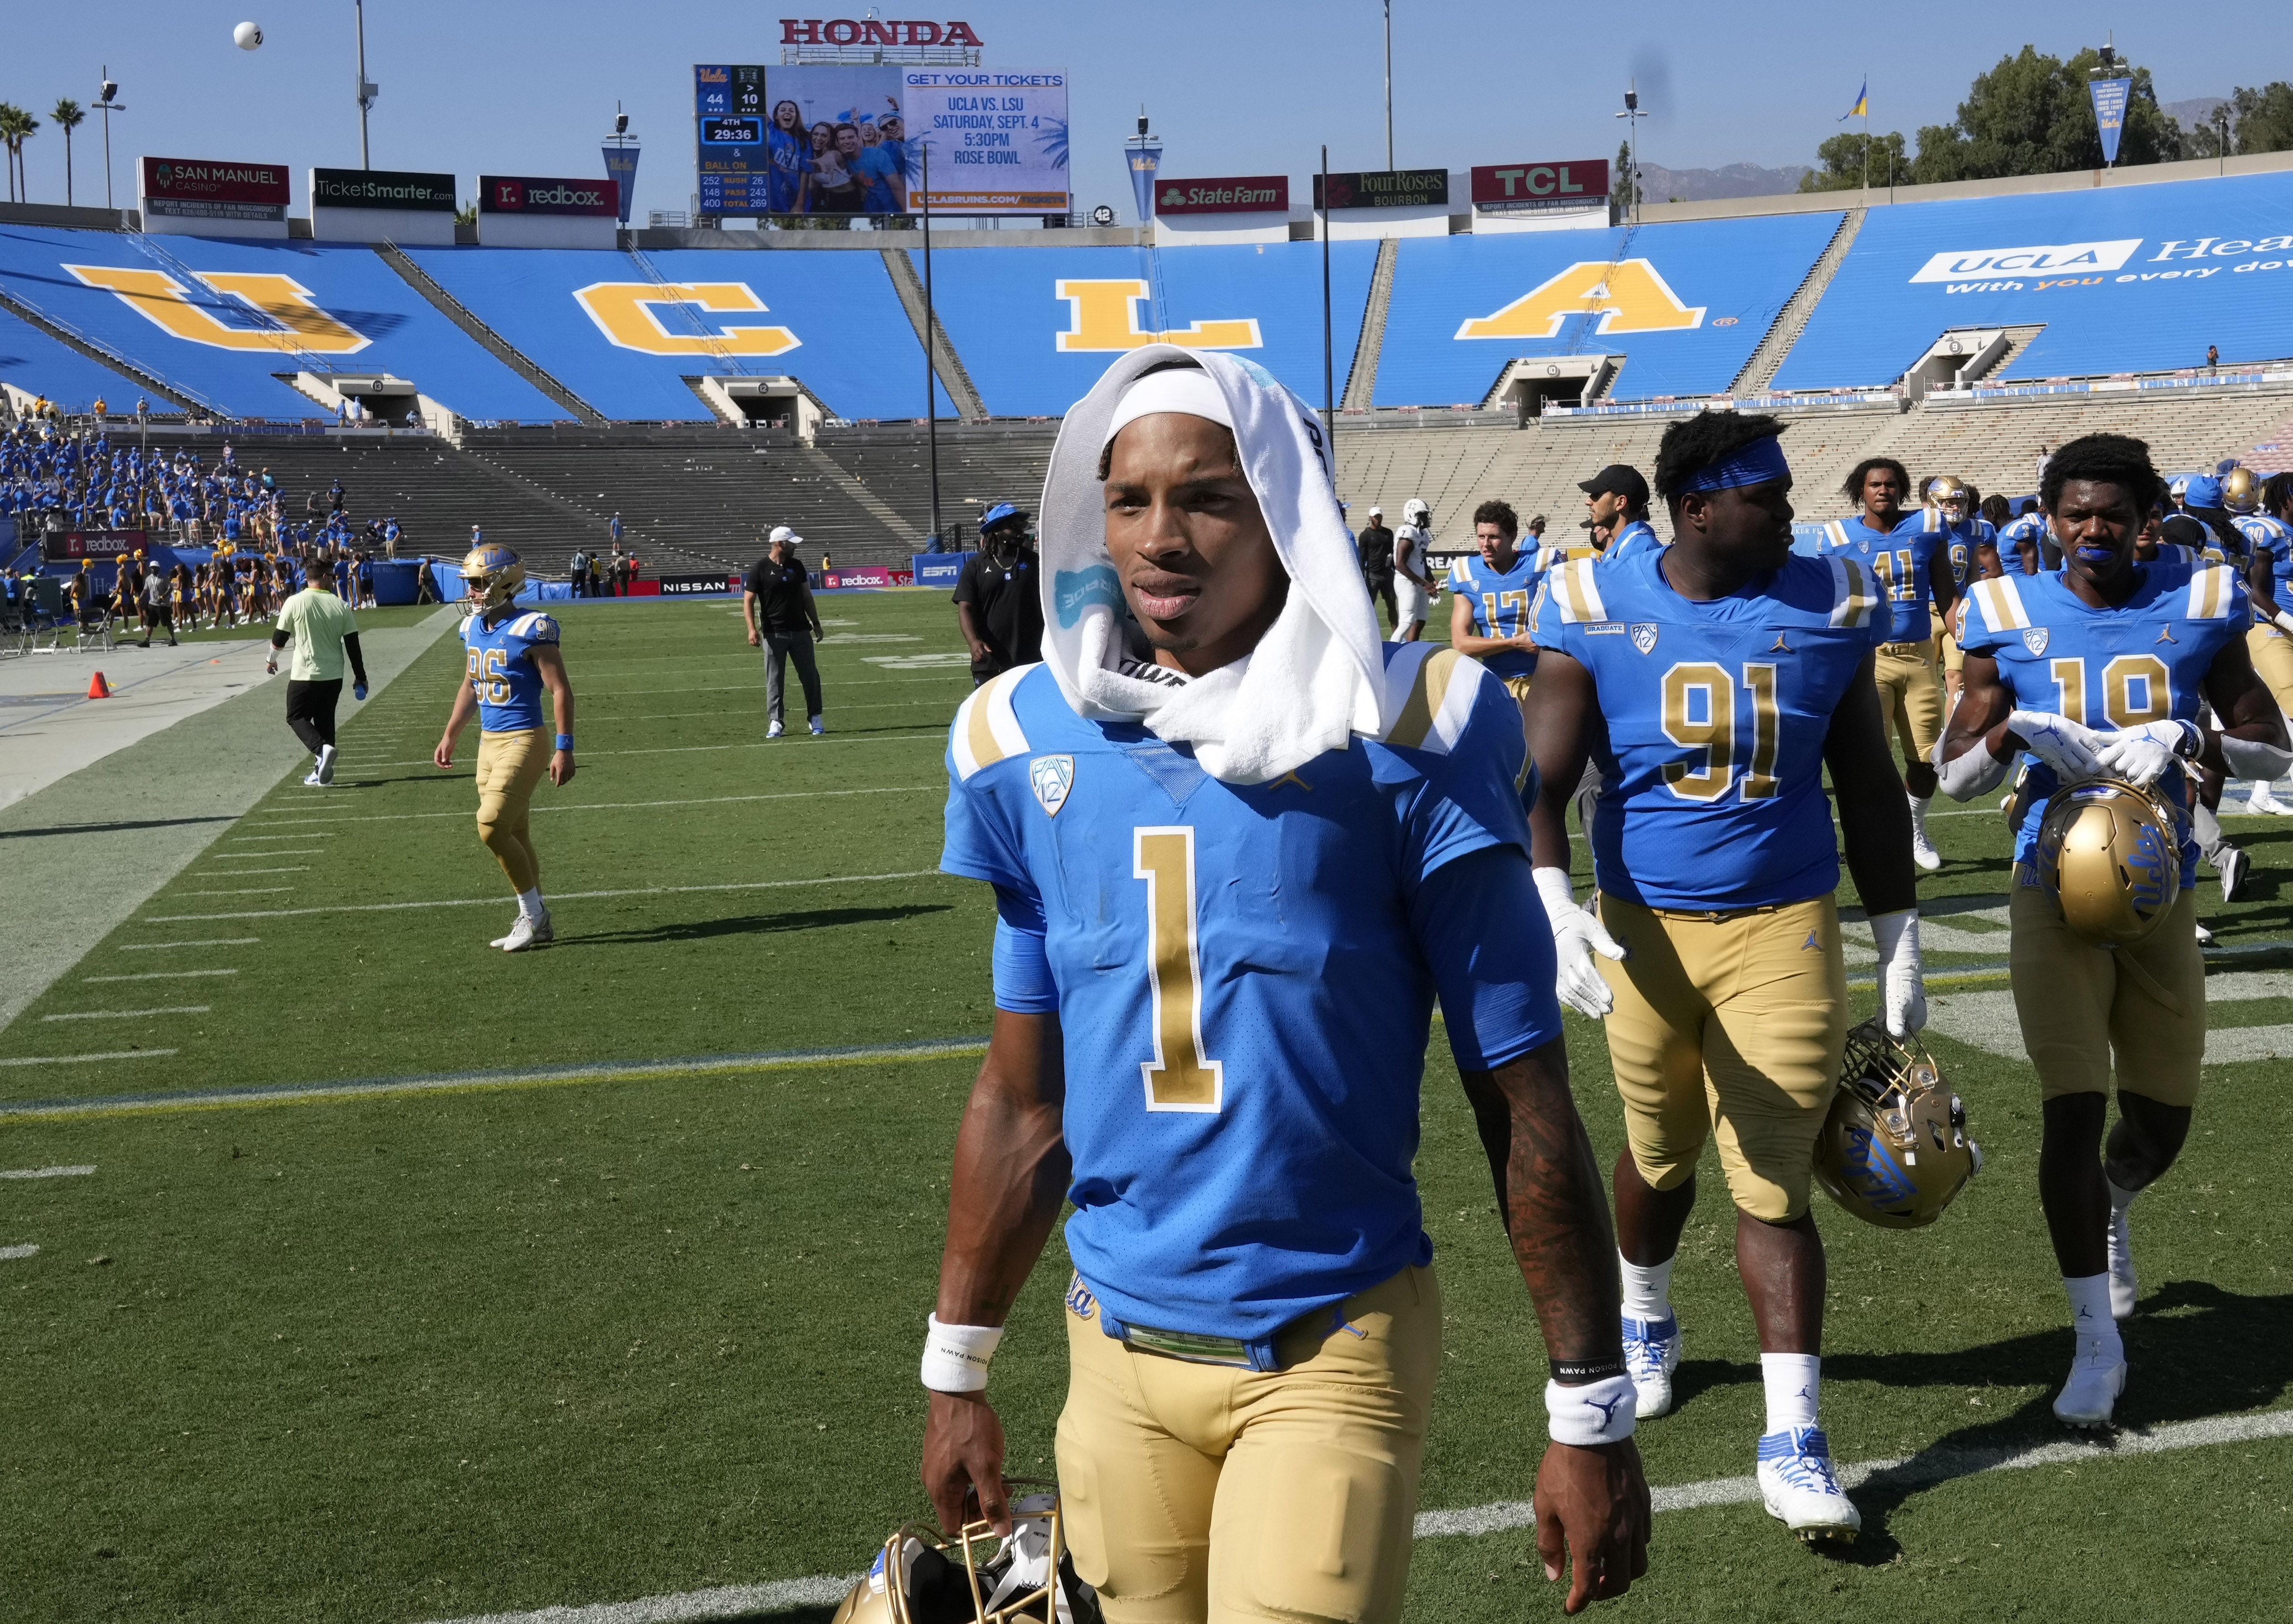 UCLA Bruins defeated the Hawaii Warriors 44-10 during a NCAA Football game at the Rose Bowl in Pasadena.